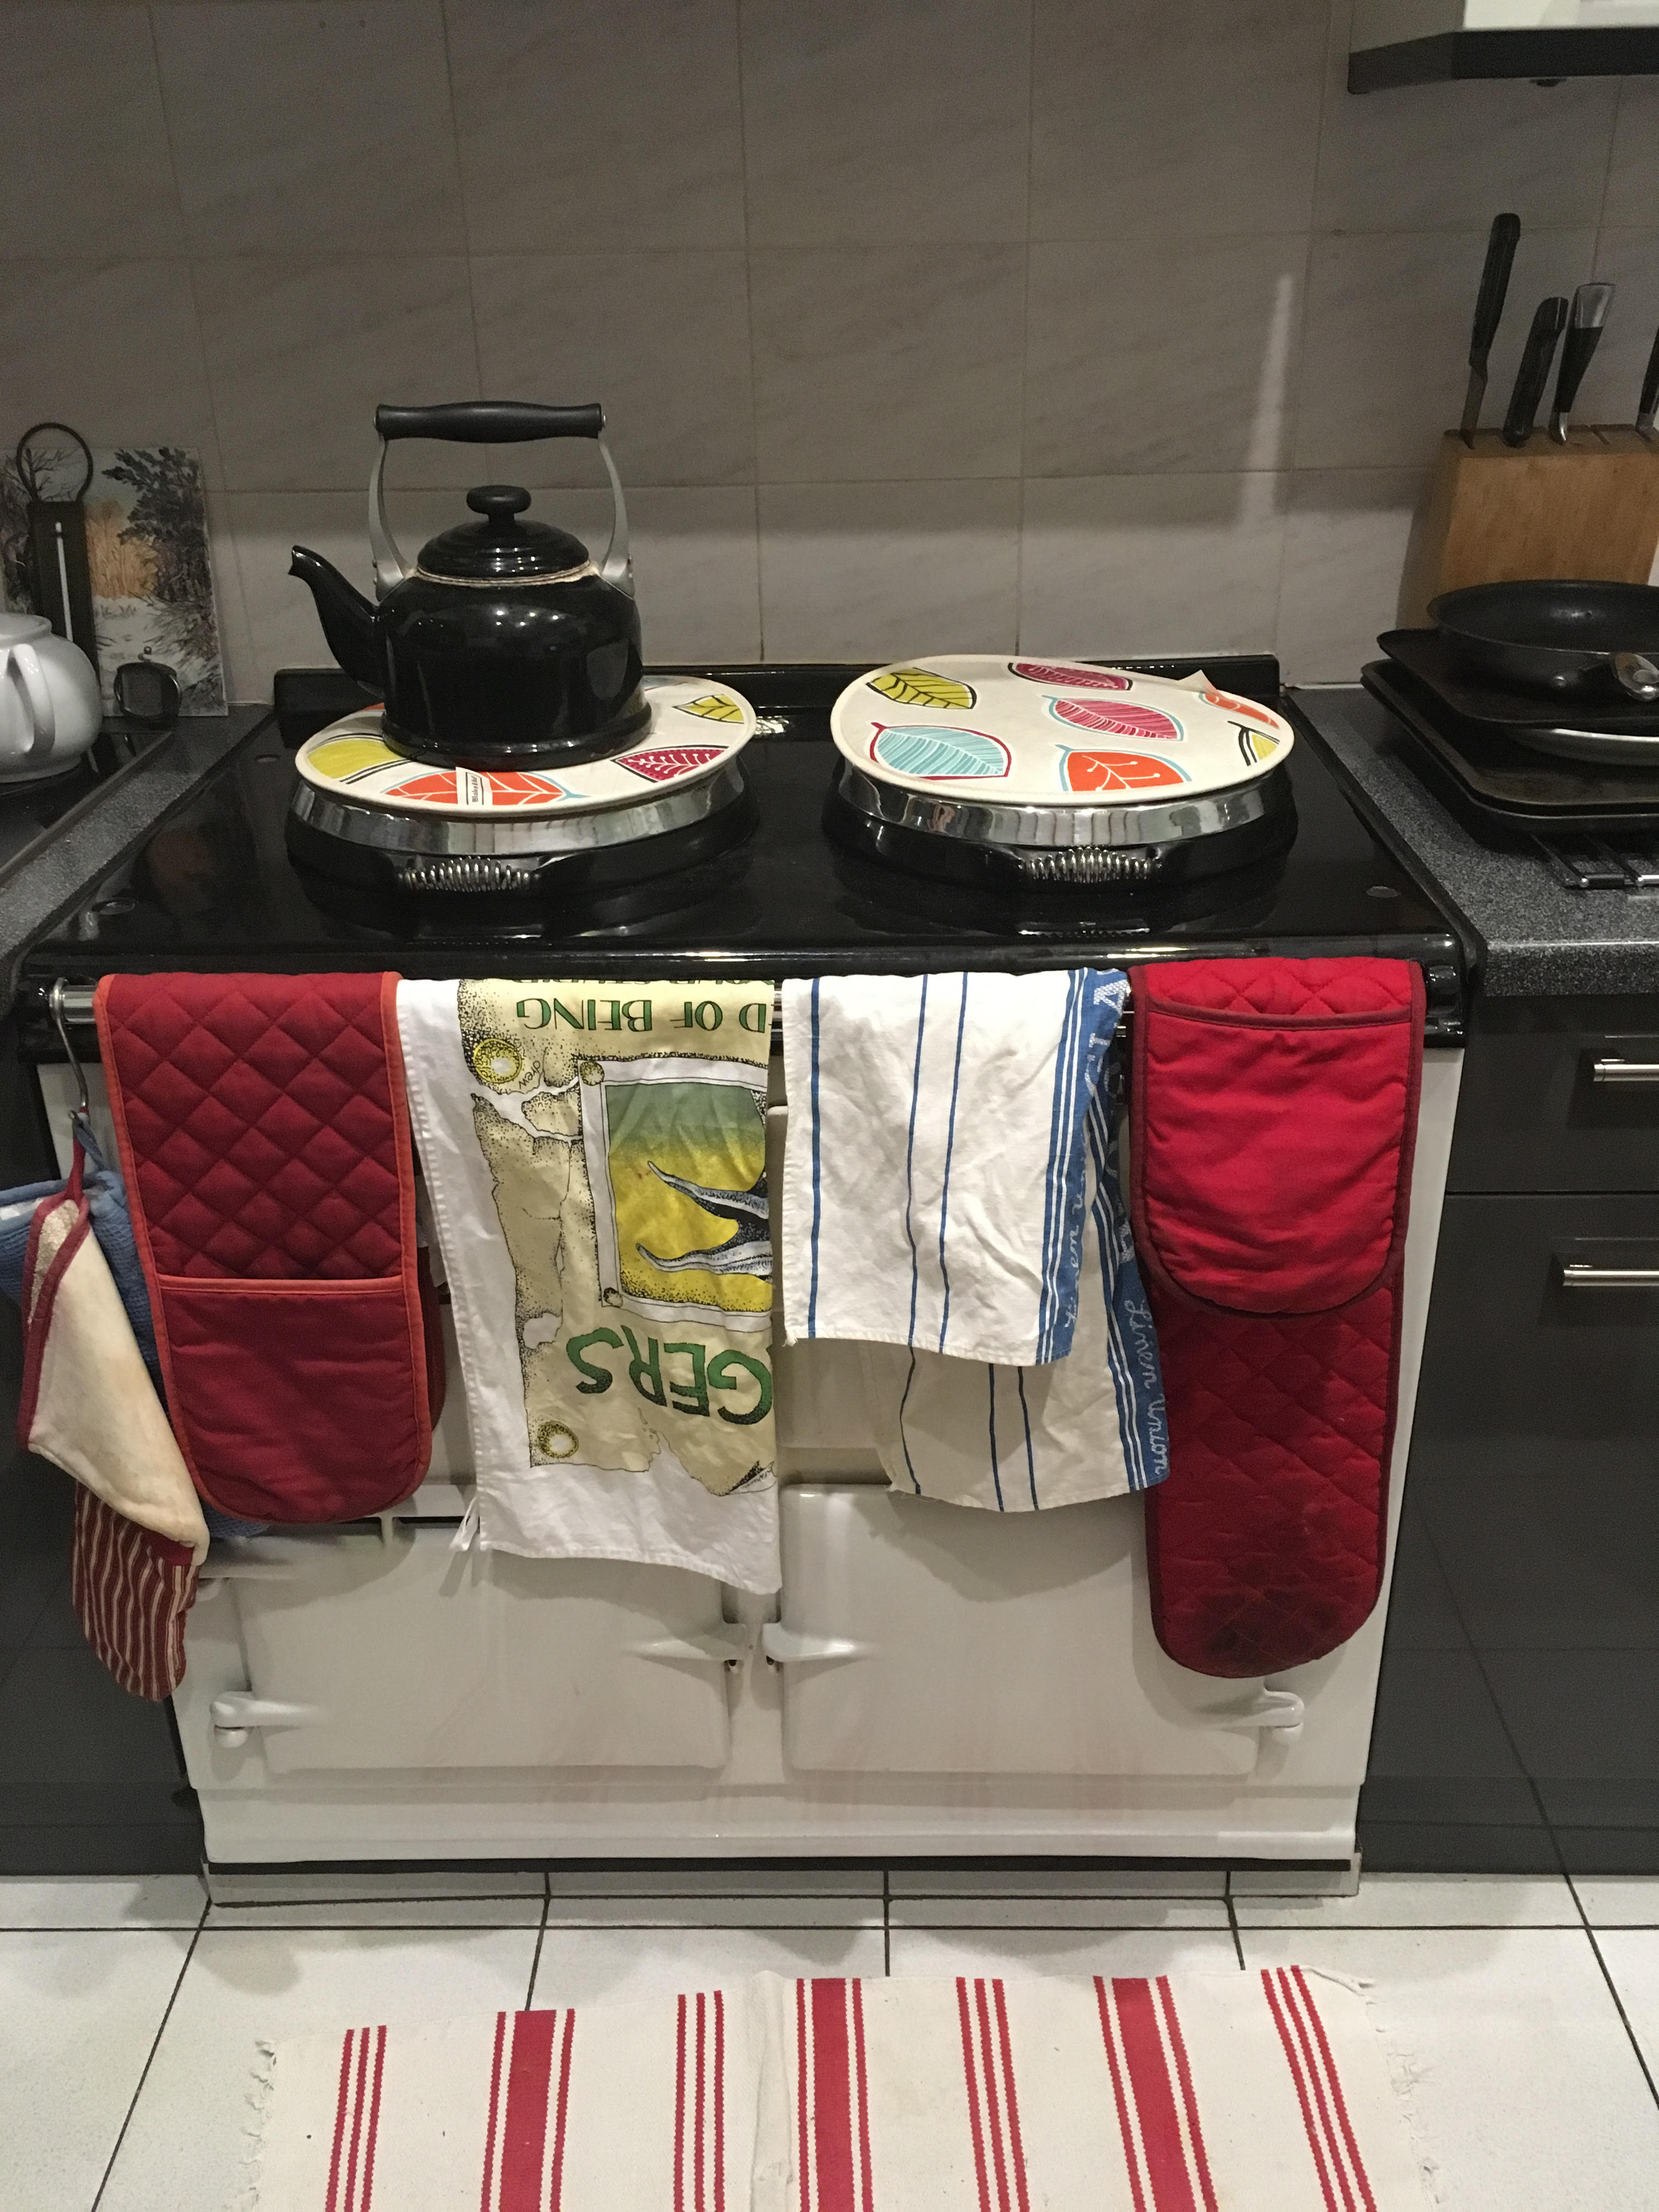 Aga drying tea towels